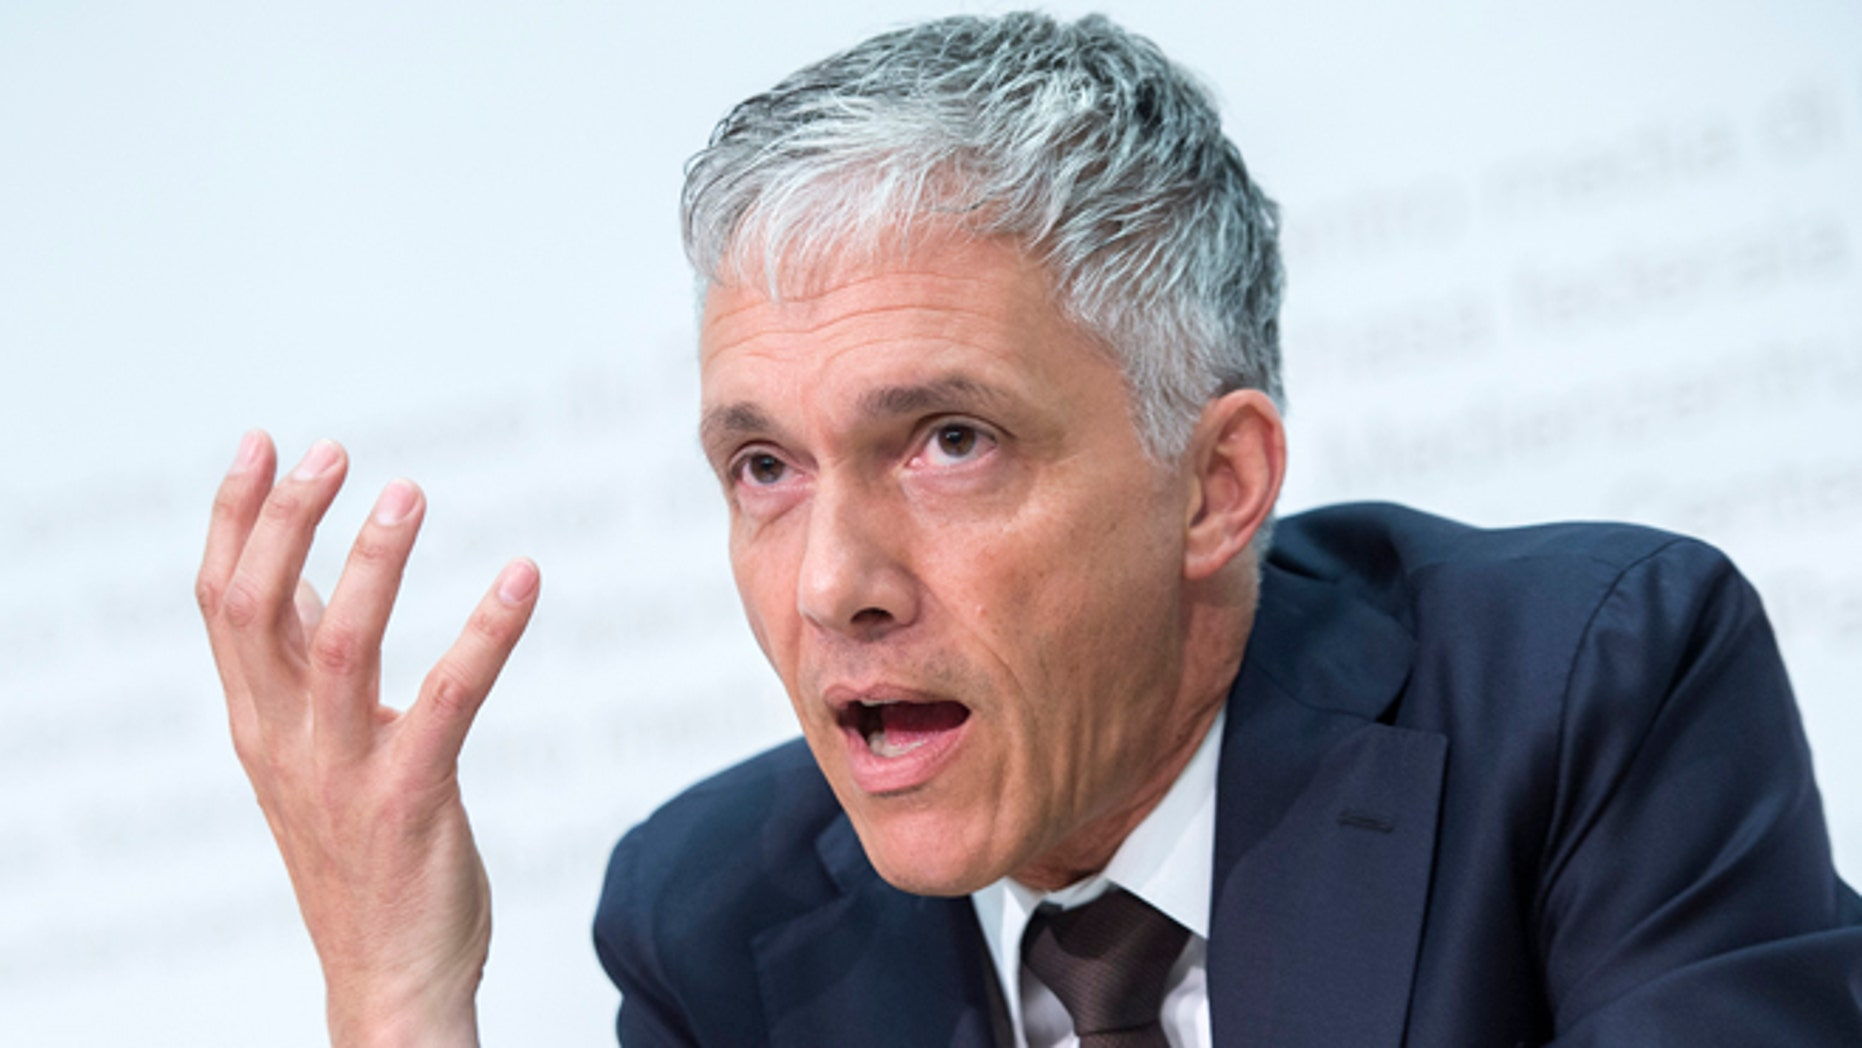 Swiss attorney general Michael Lauber speaks during a press conference in Bern, Switzerland, Wednesday, June 17, 2015. Lauber said that banks have noted 53 possible money-laundering cases in a FIFA probe. (Marcel Bieri/Keystone via AP)